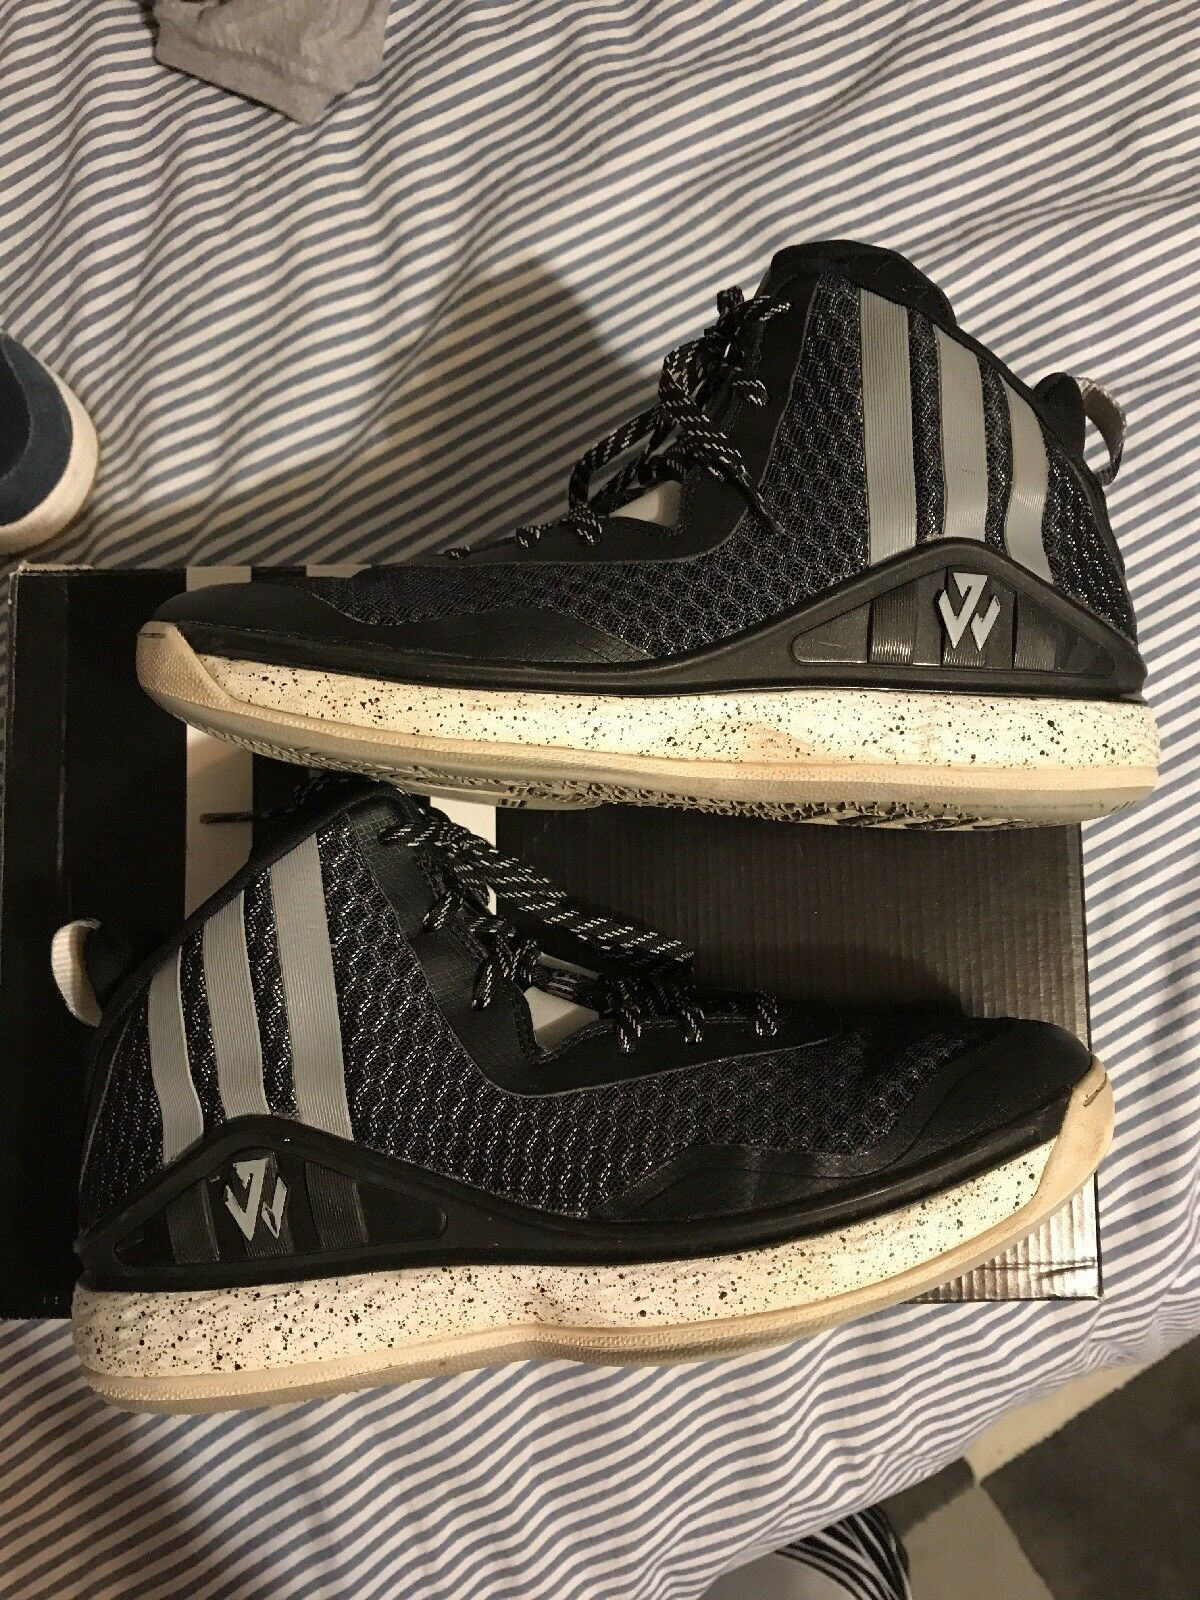 Adidas John Wall 1 Price reduction Comfortable Comfortable and good-looking